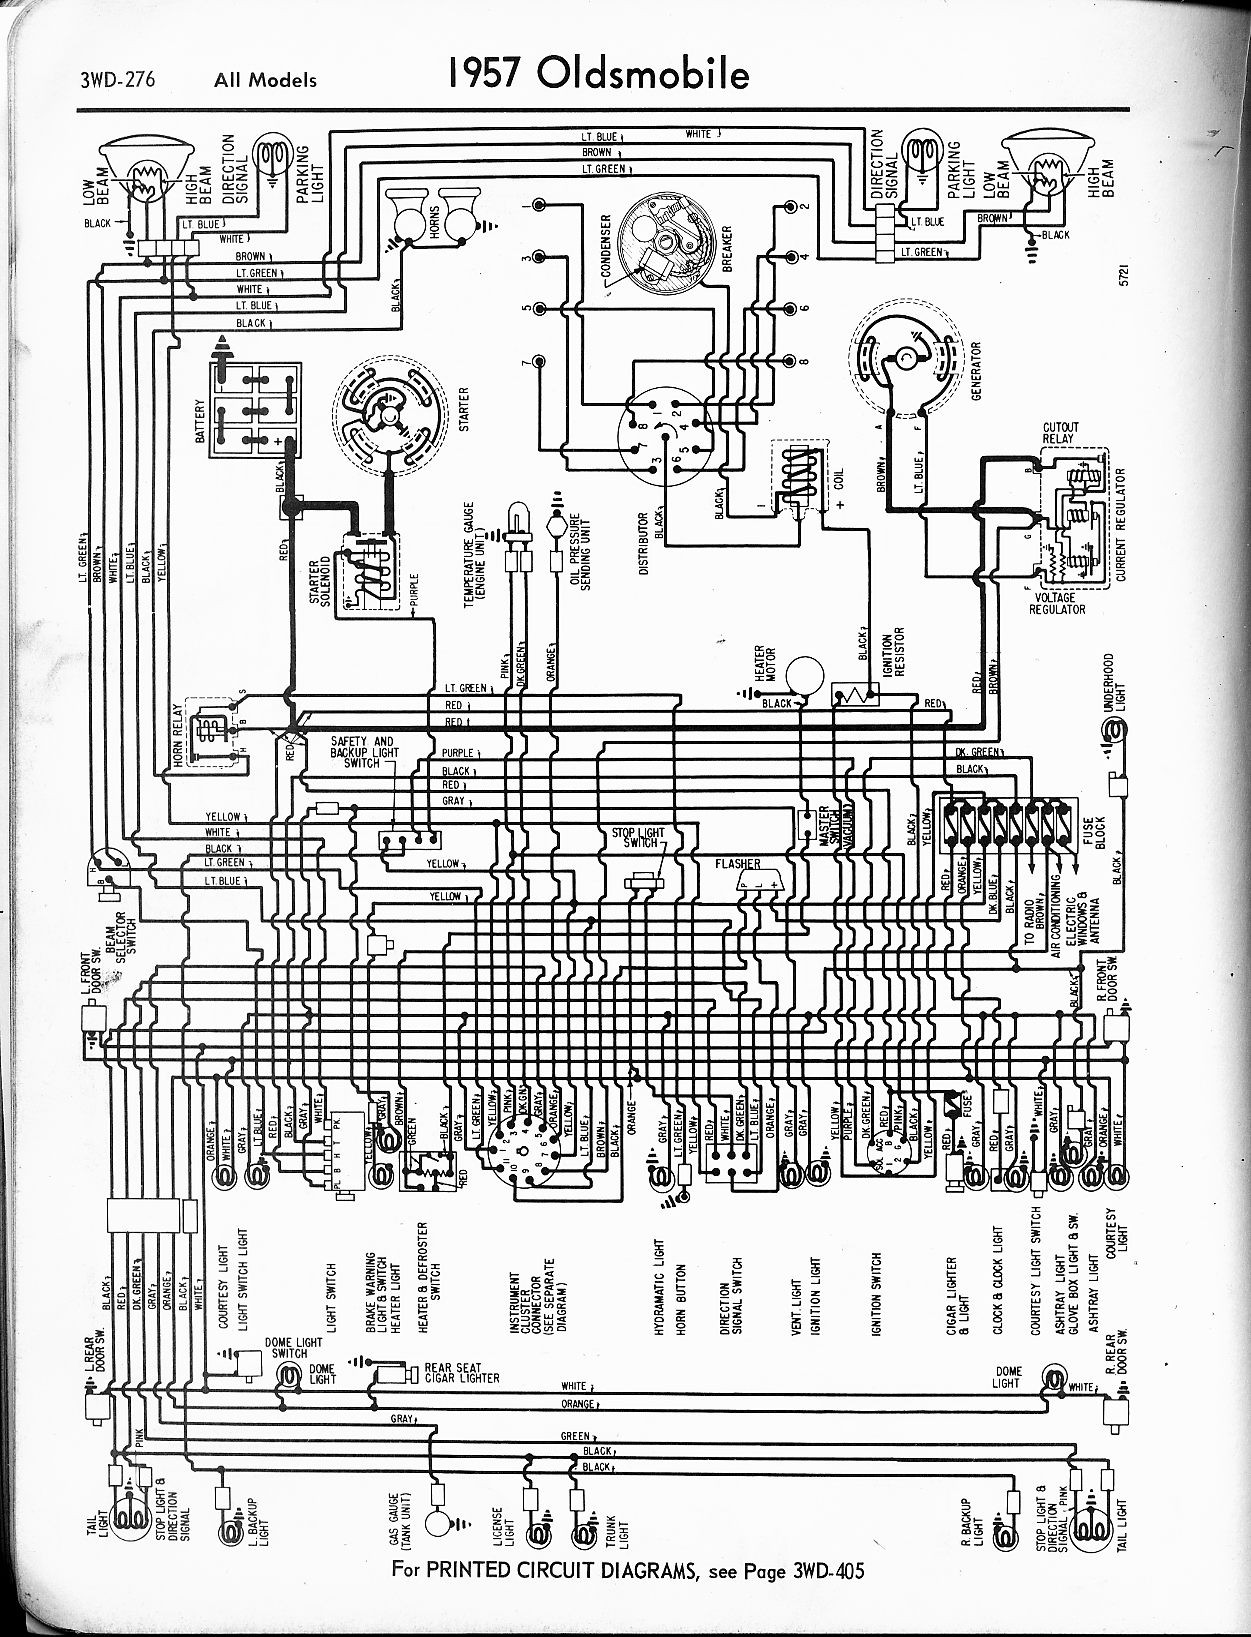 1998 Honda Accord Engine Diagram Oldsmobile Wiring Diagrams the Old Car  Manual Project Of 1998 Honda